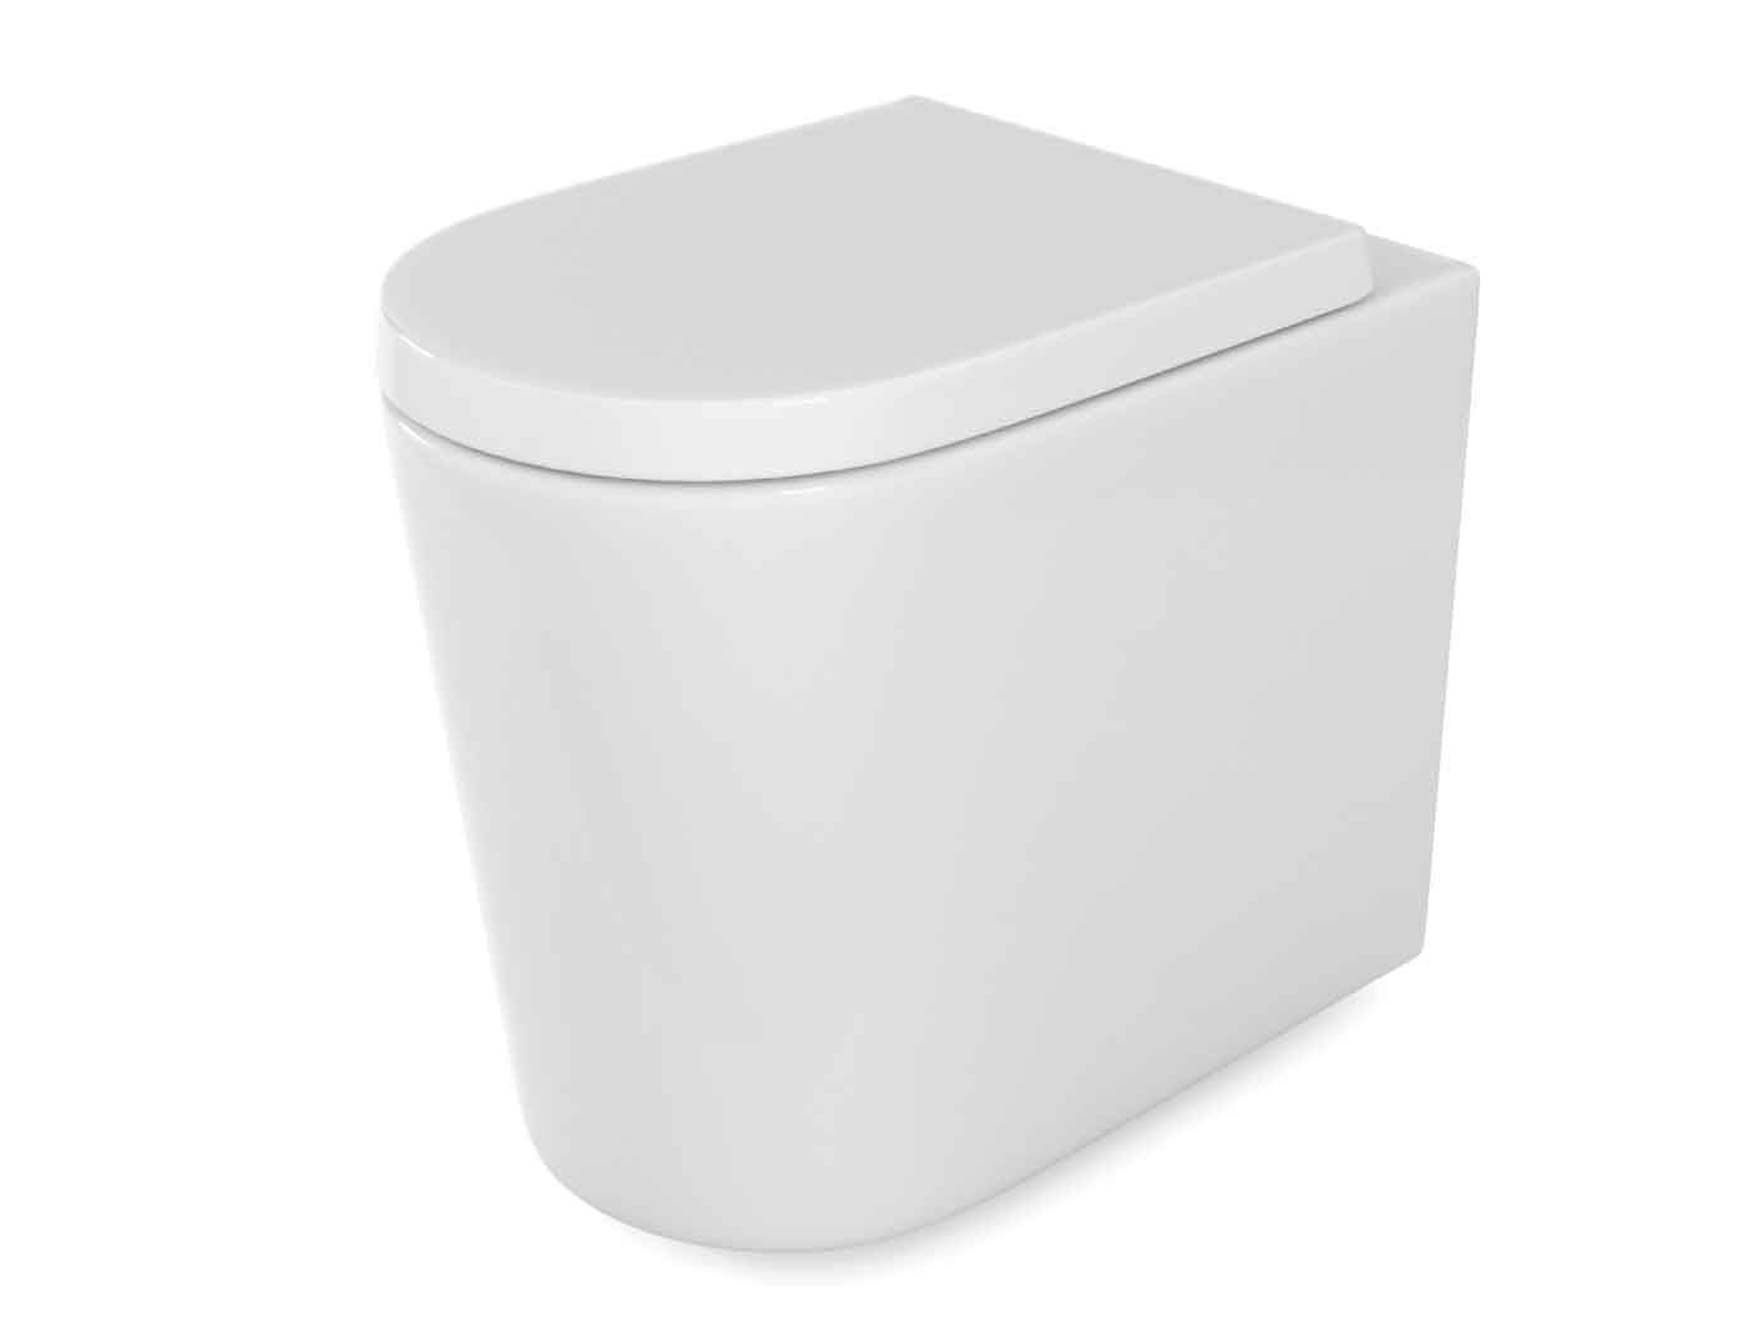 Zadok Rimless Back To Wall Toilet Soft Close Seat